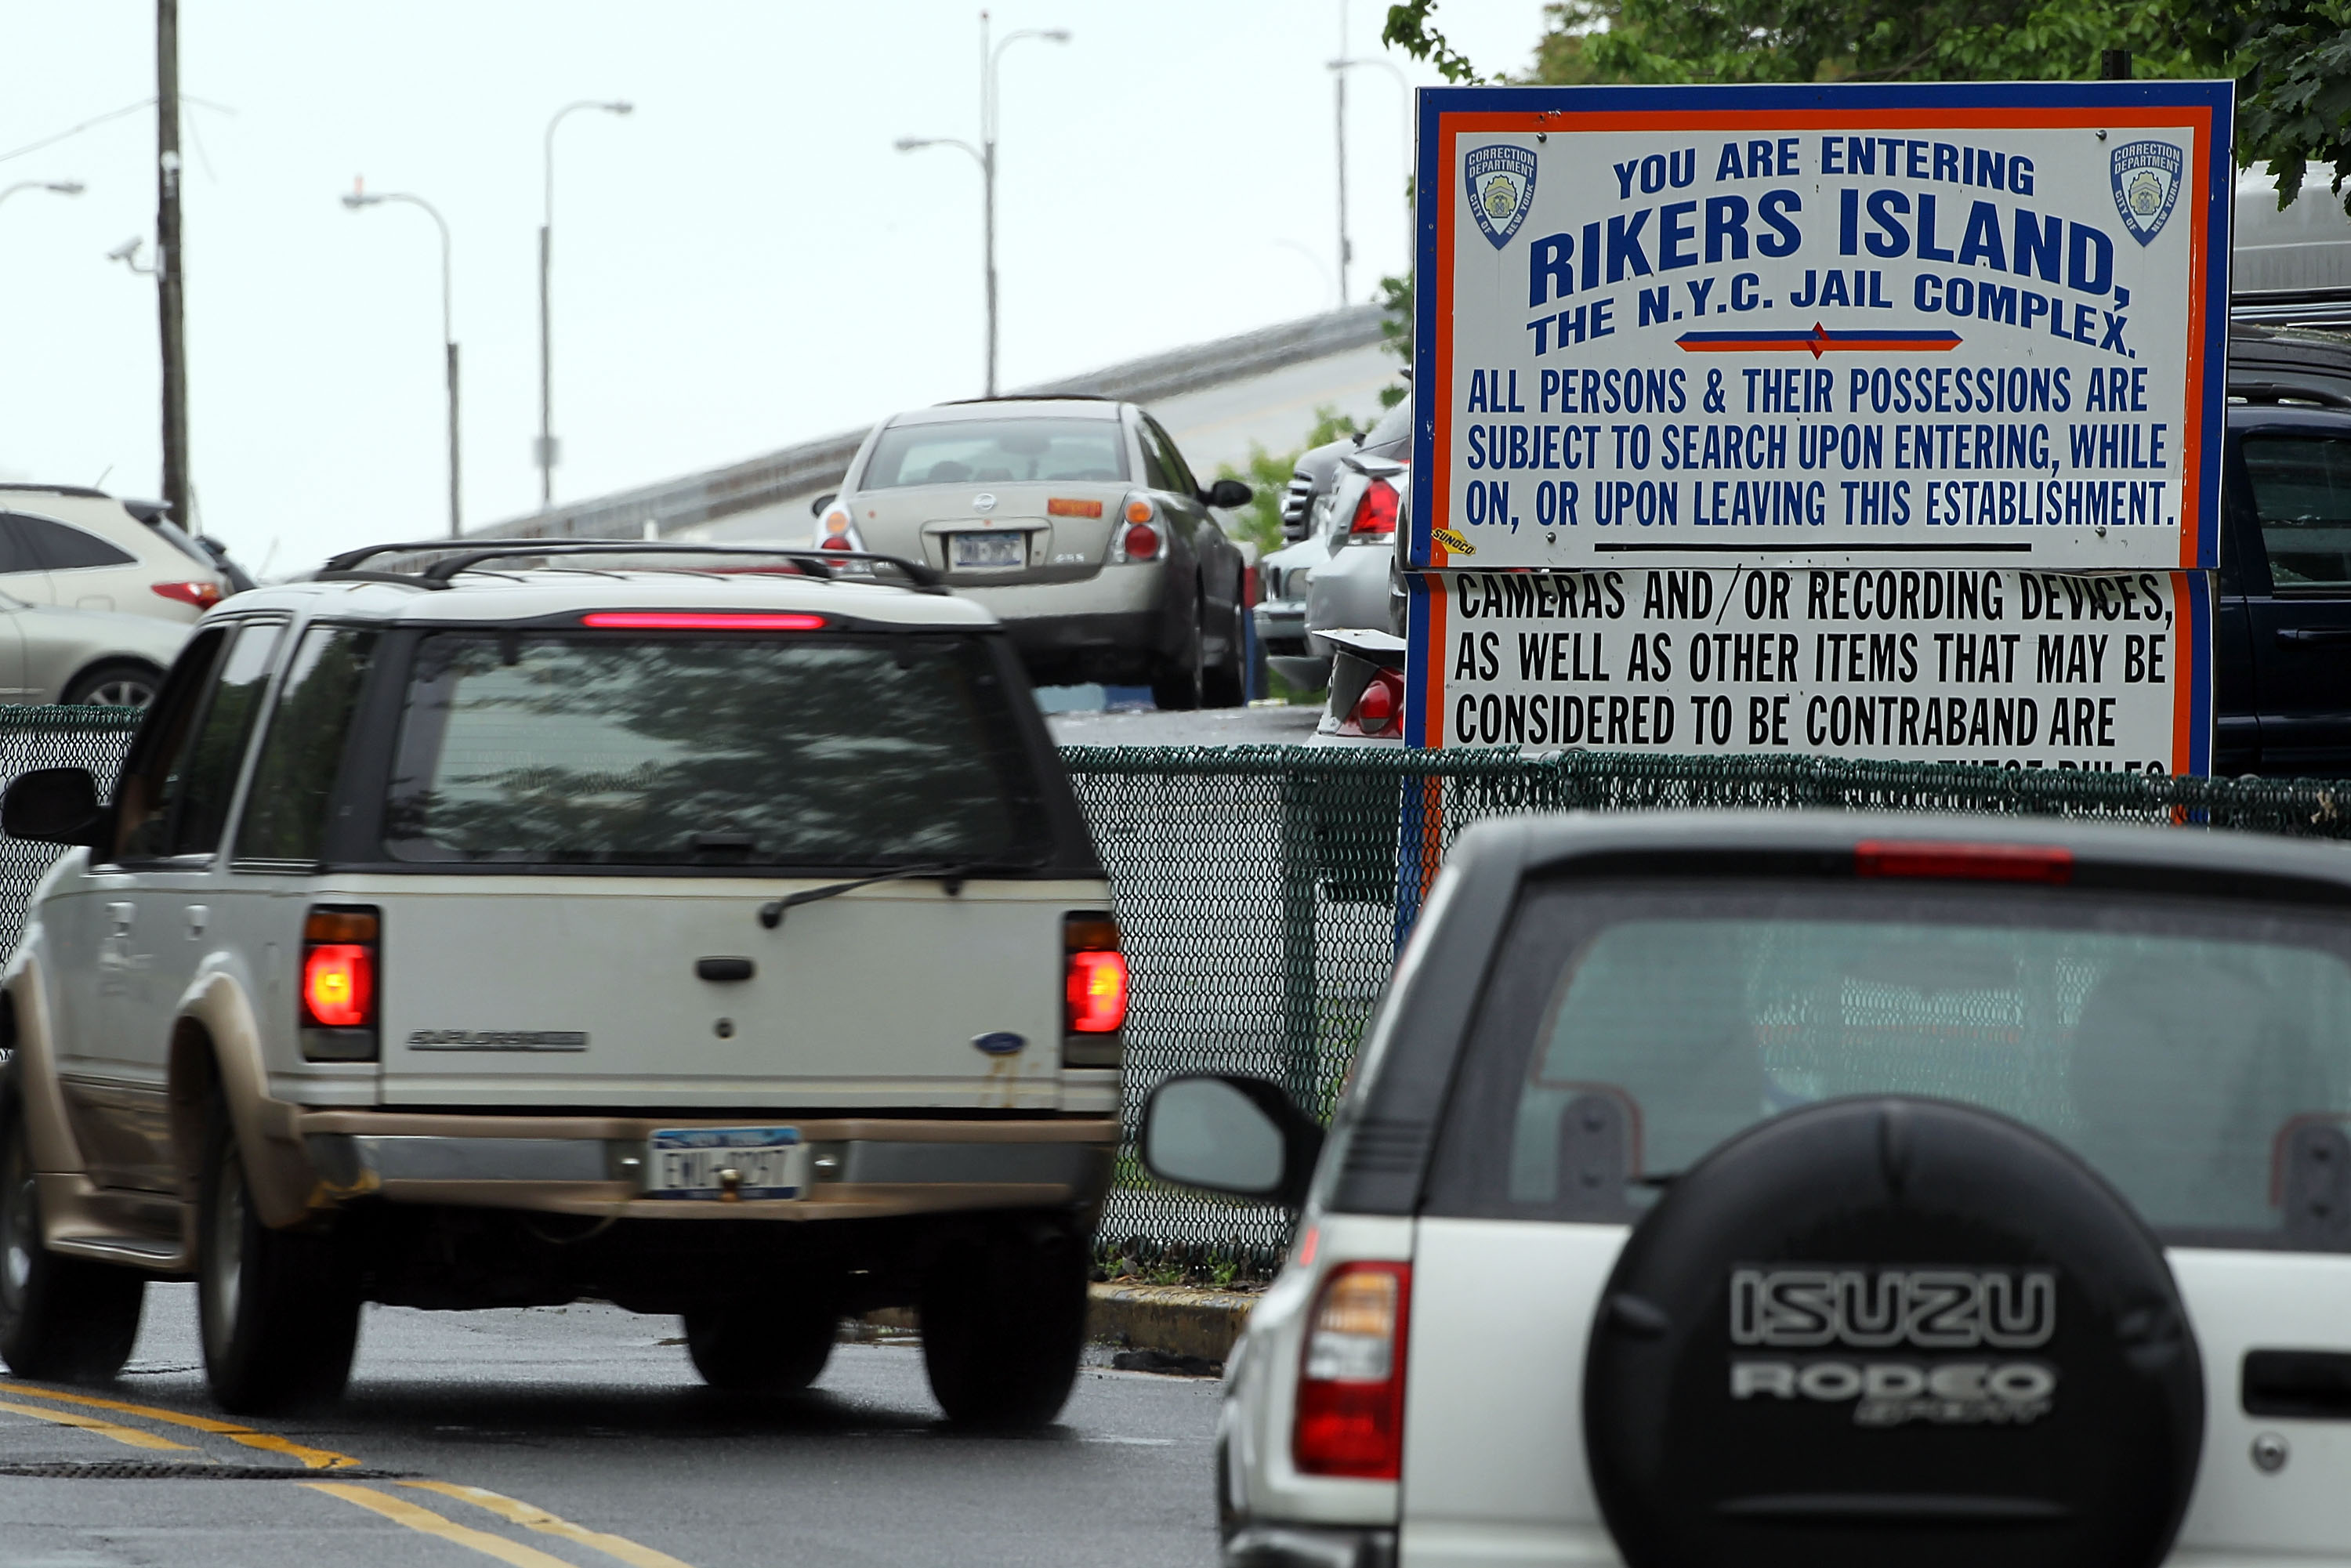 The entrance to Rikers Island. (Getty)